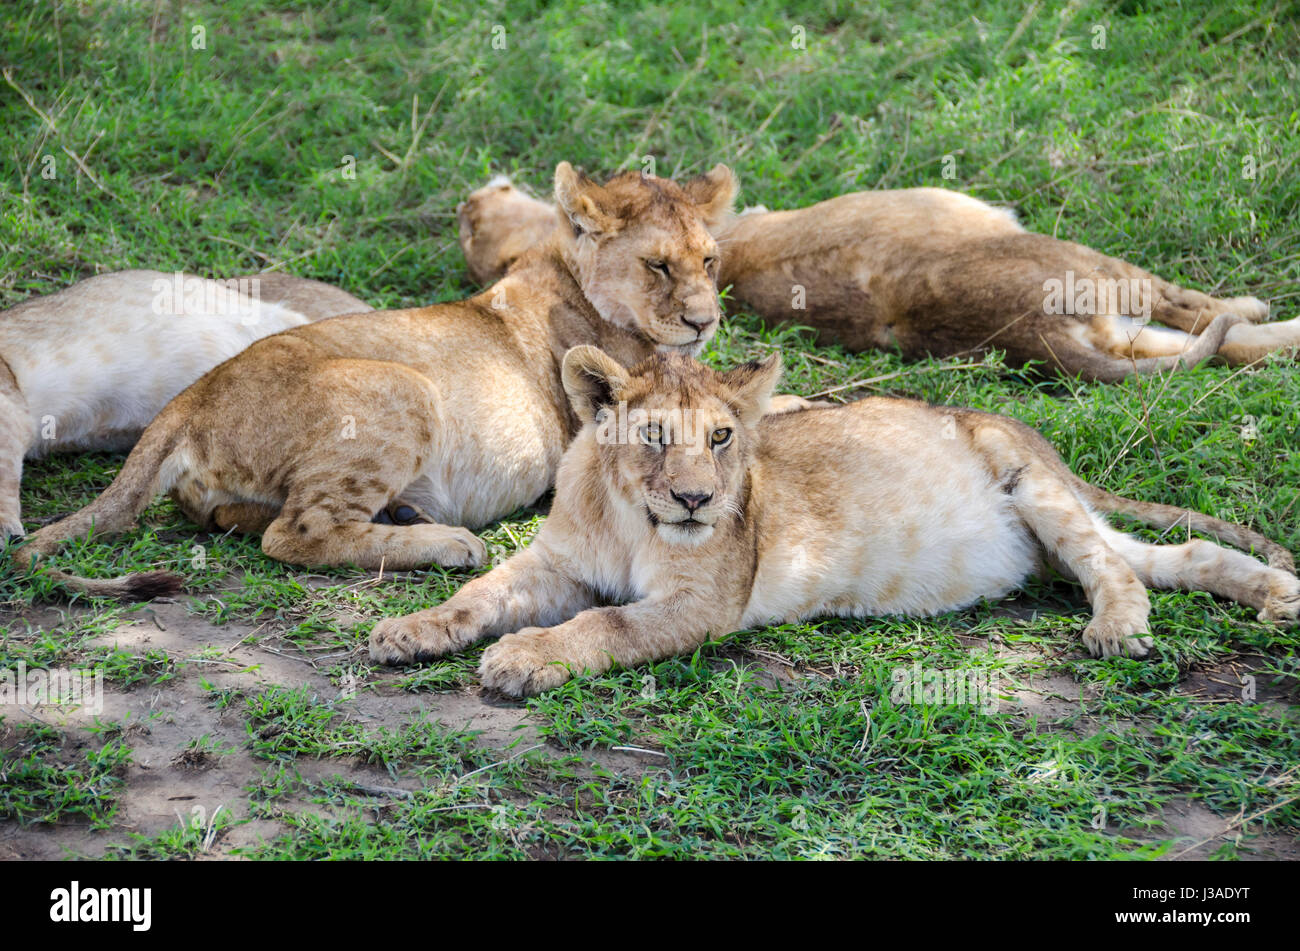 Jung lions sleeping on the grass in Ngorongoro, Tansania - Stock Image